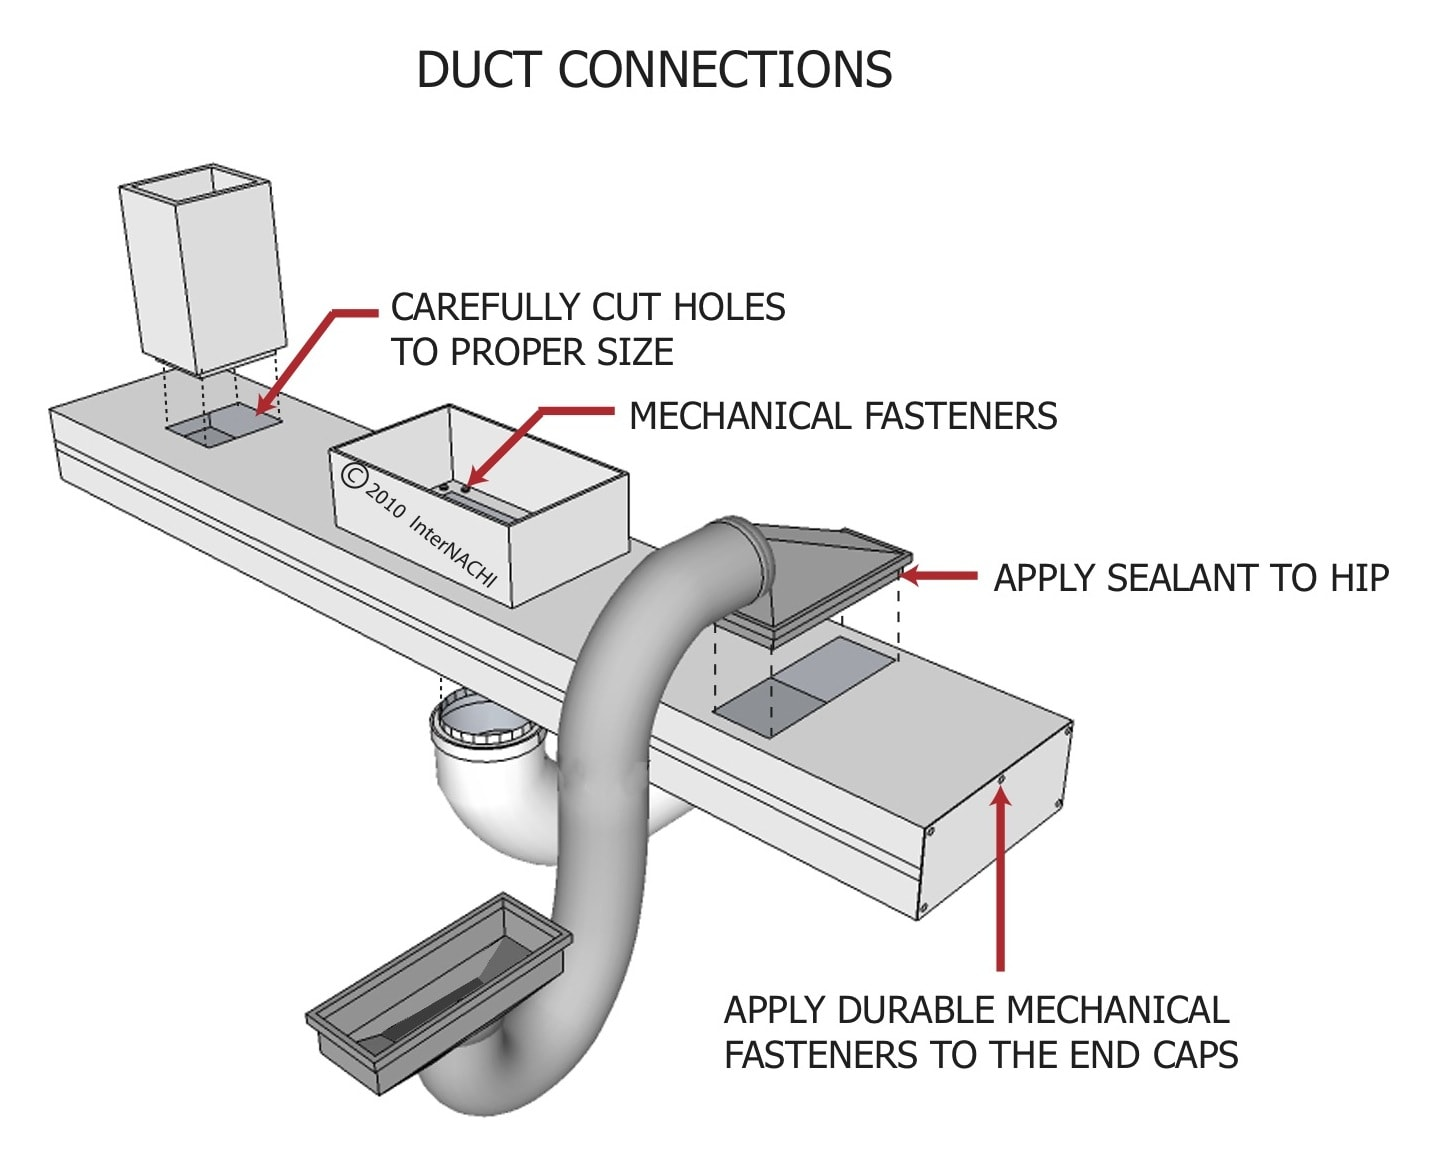 Duct connections.